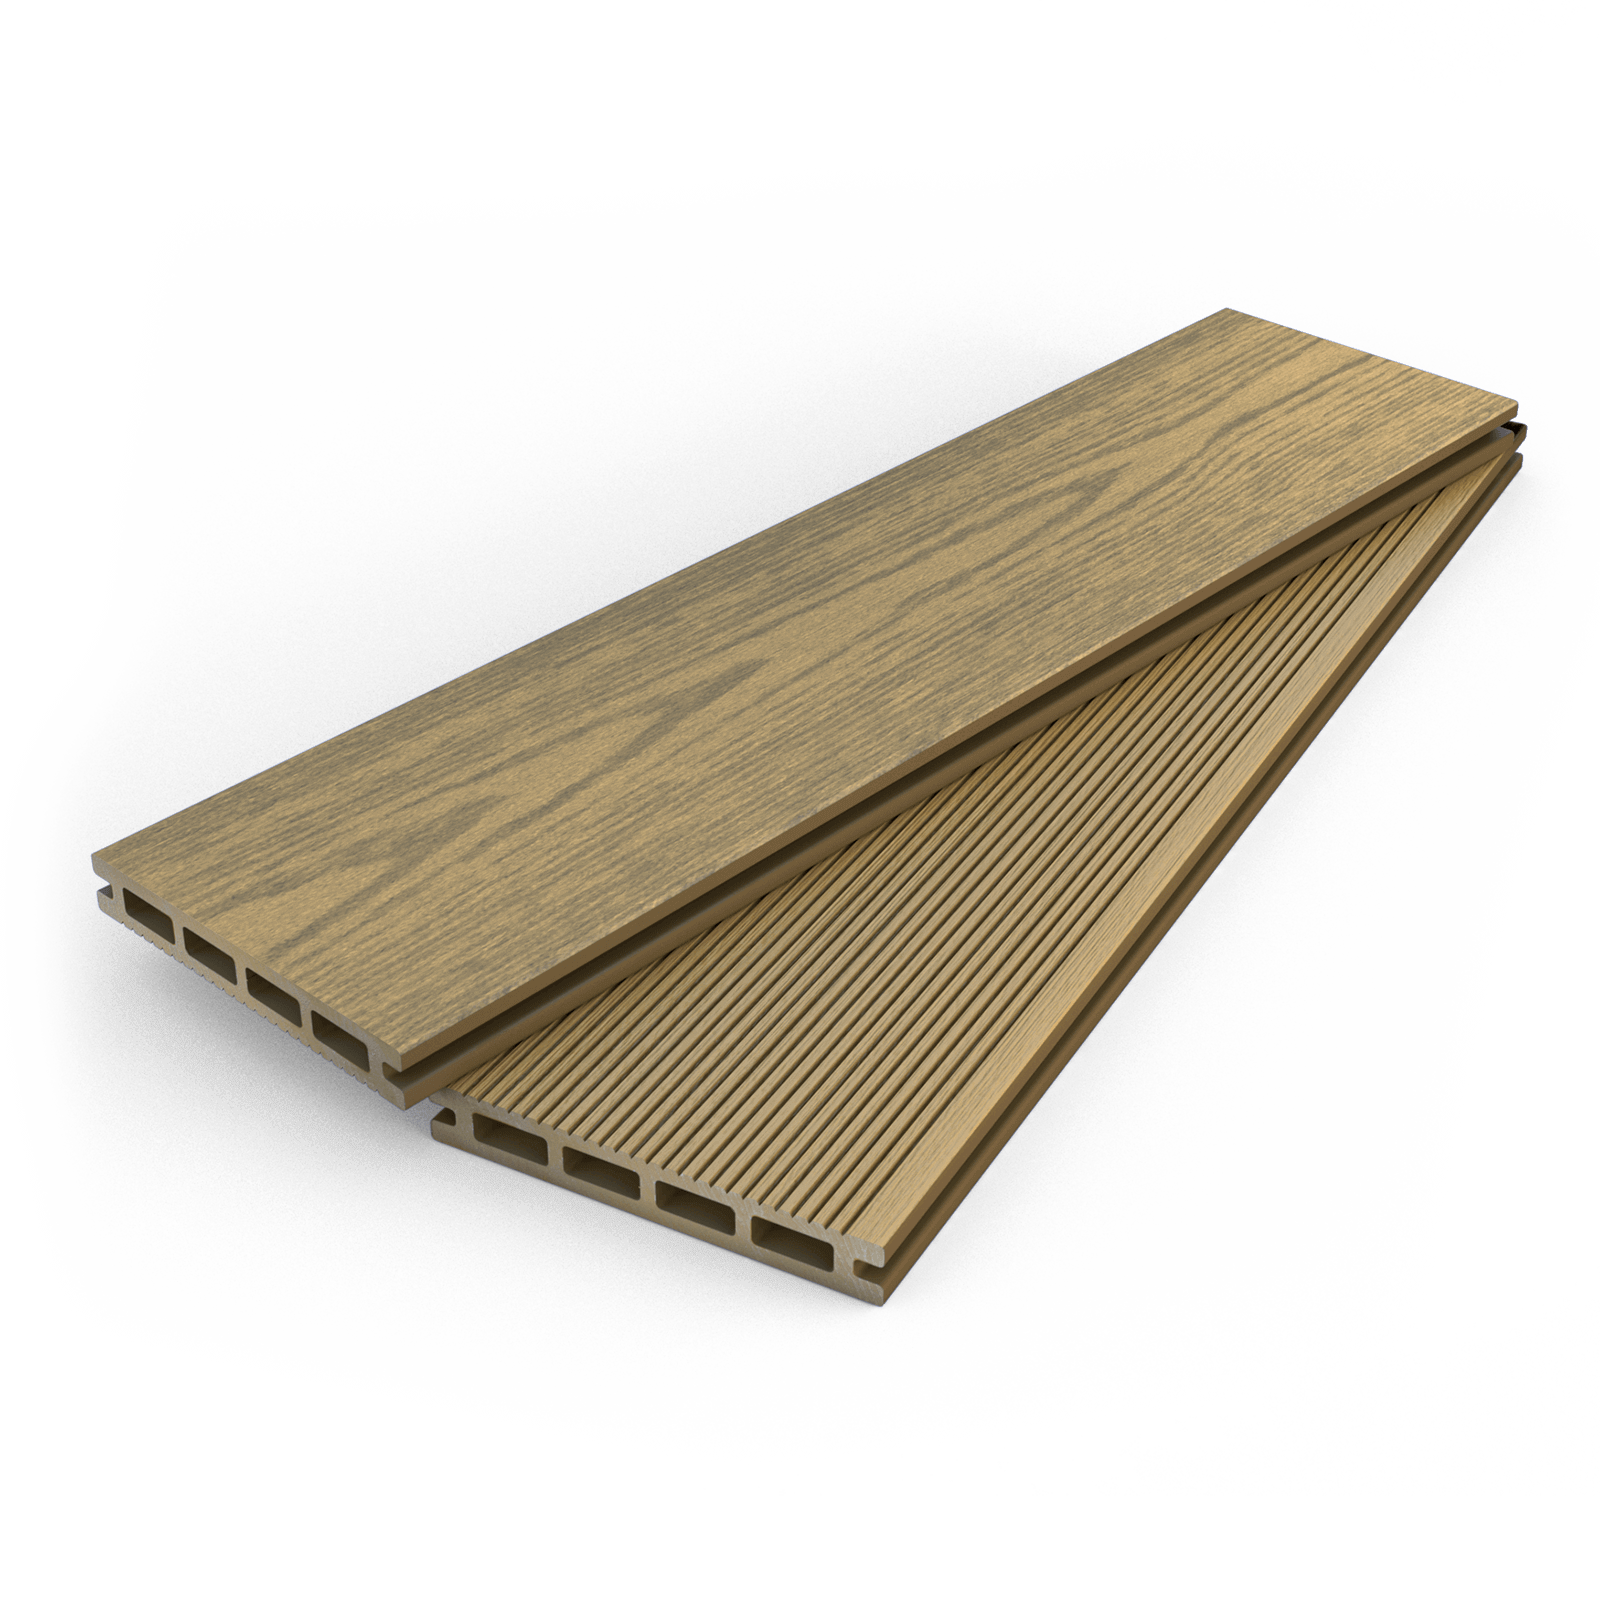 Dino decking hollow composite decking boards for Compare composite decking brands